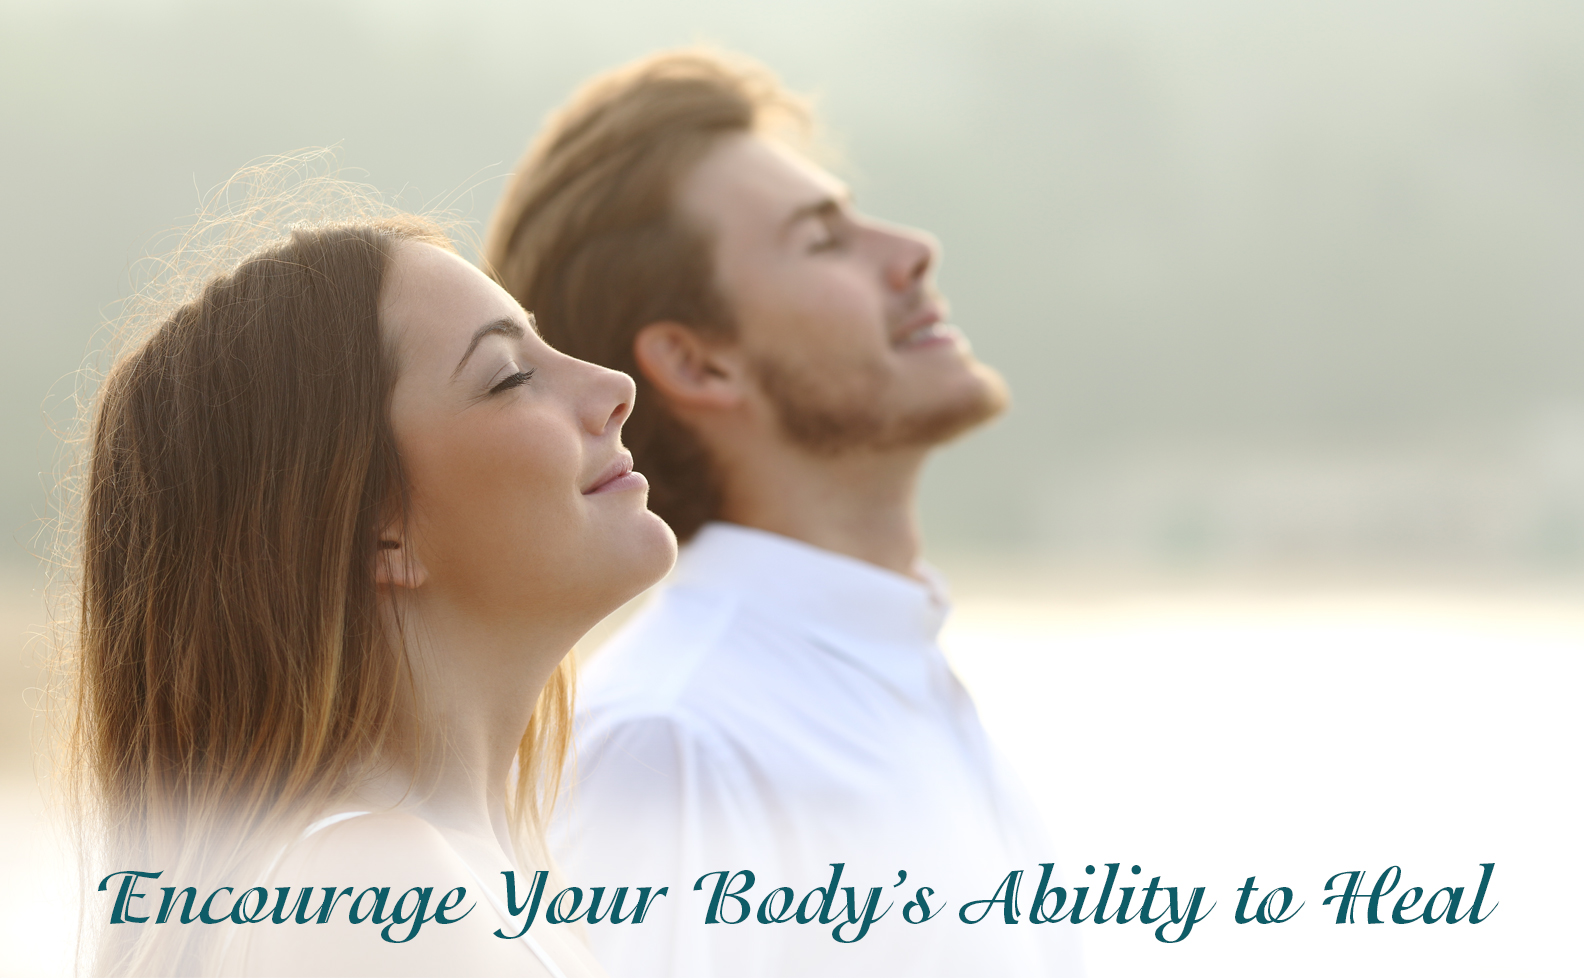 Encourage Your Body's Ability to Heal